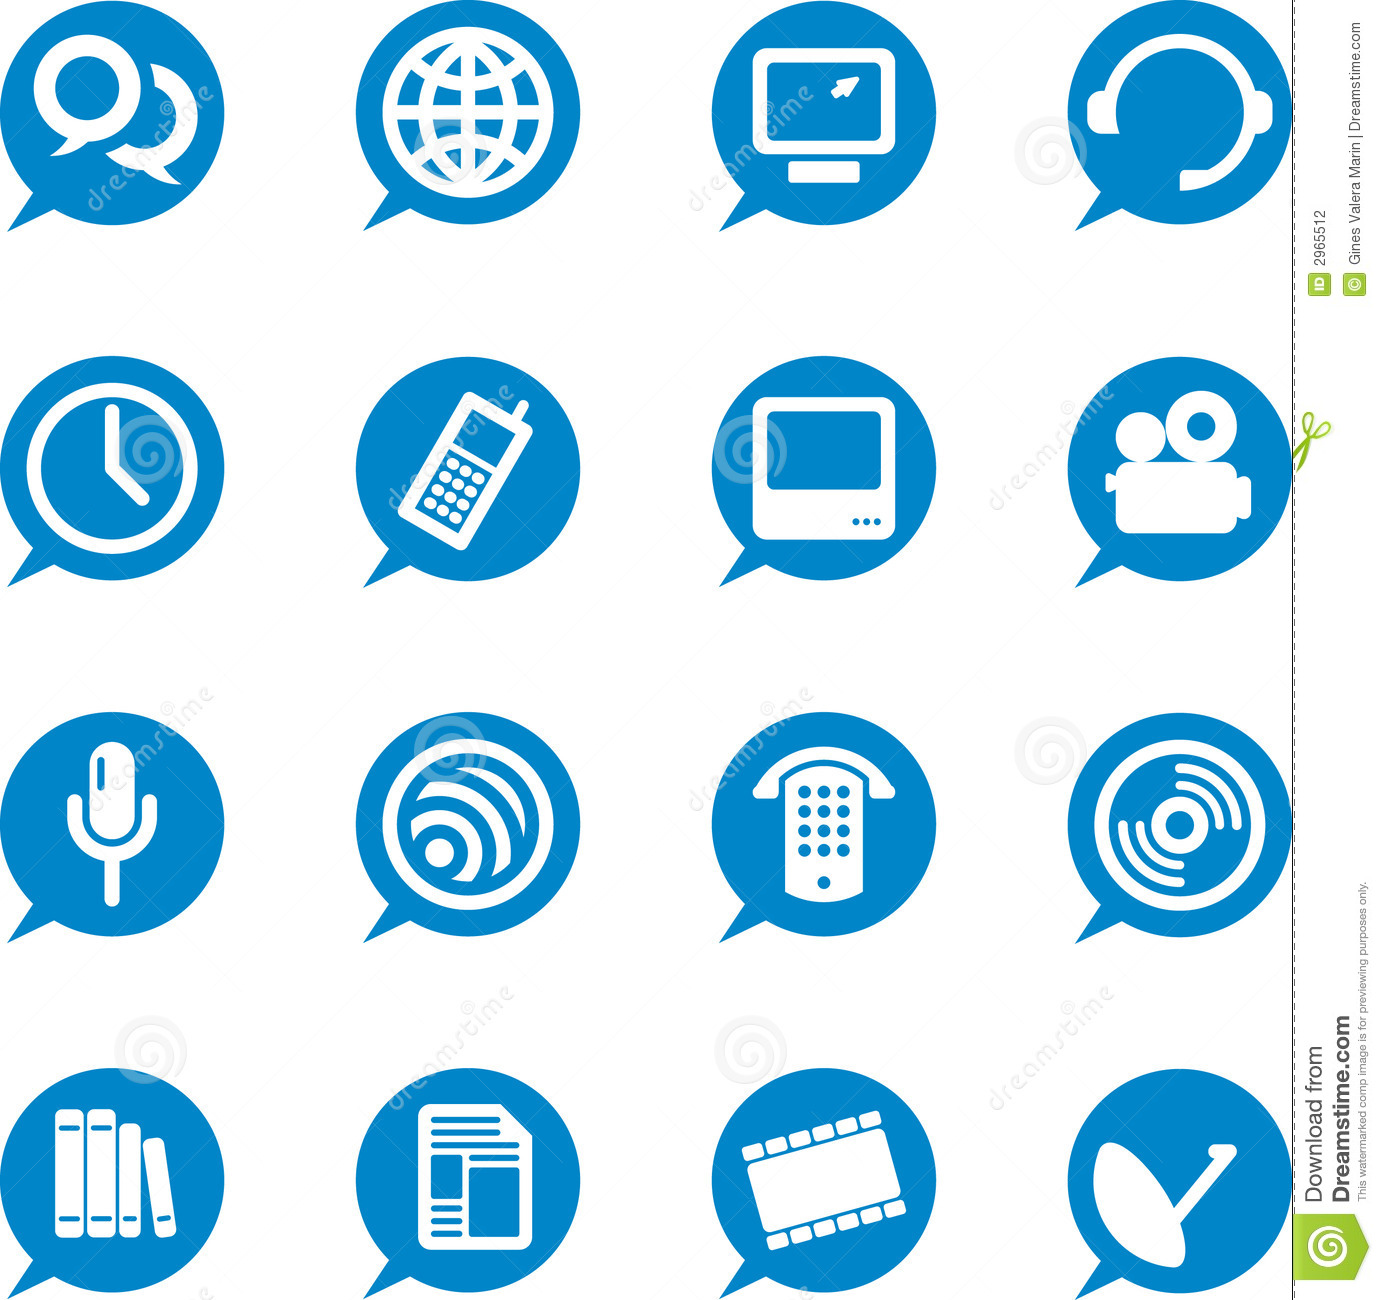 9 Communication Icon Blue Round Images